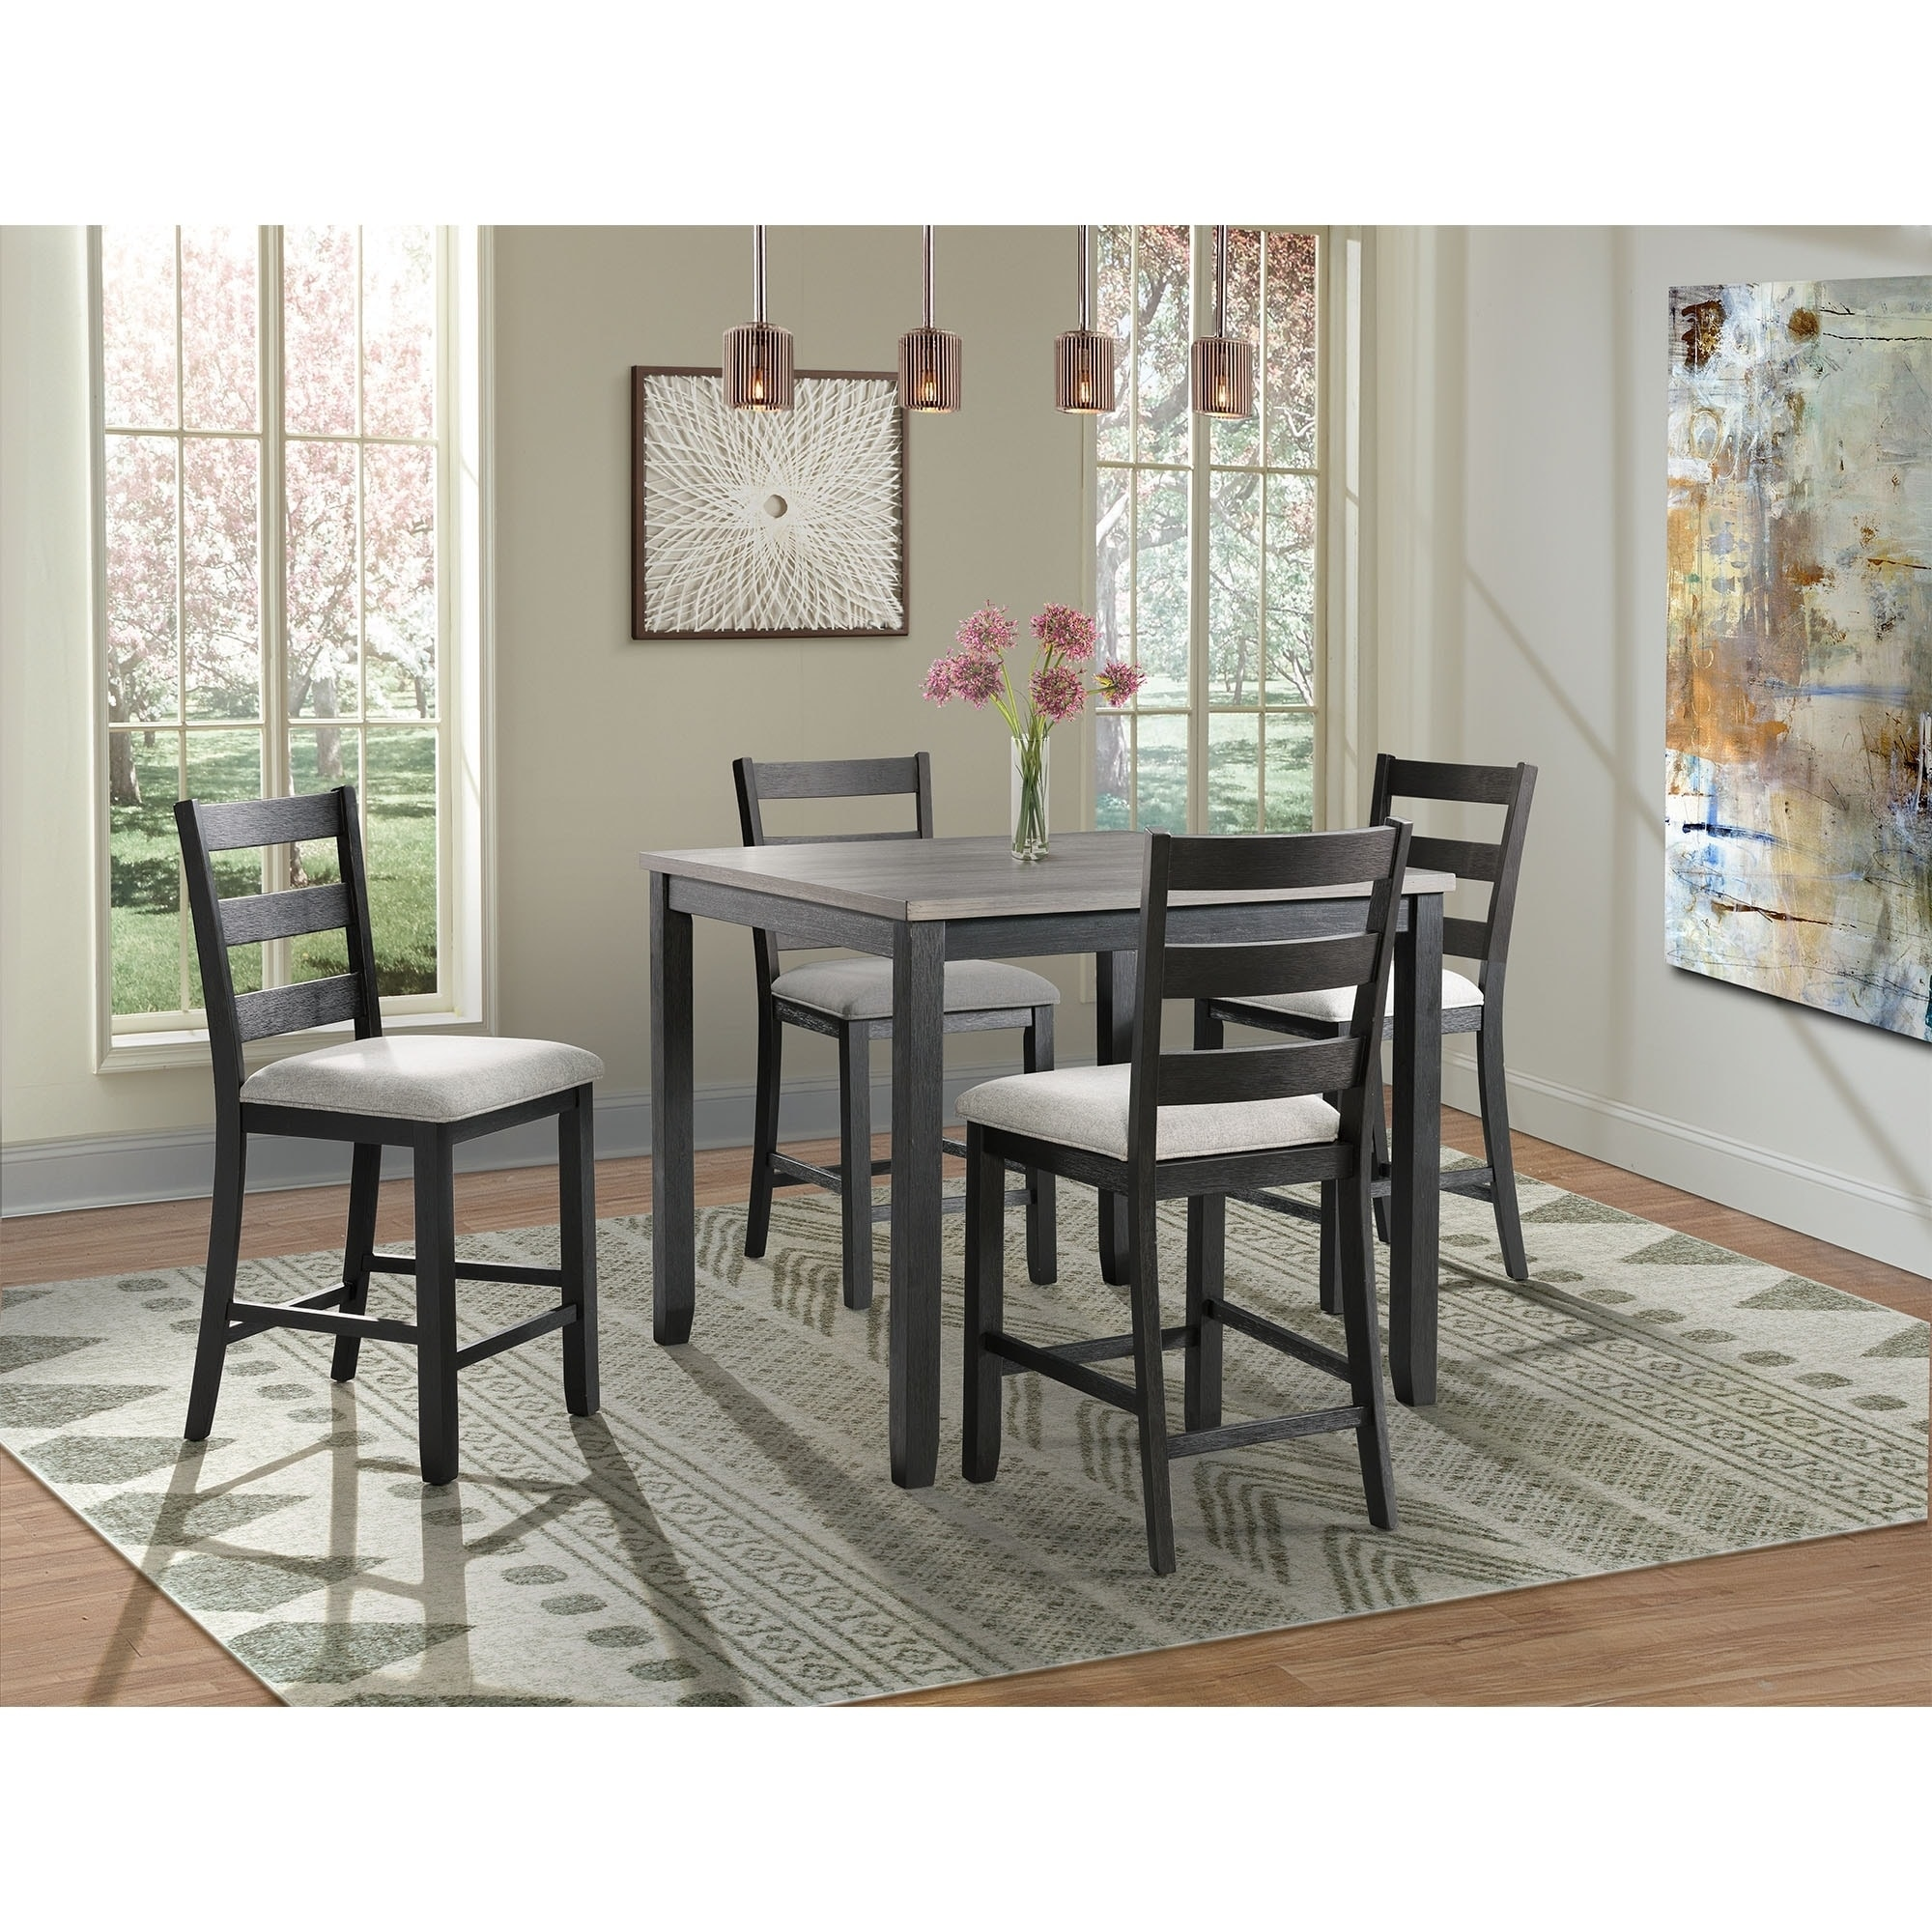 Picket House Kona Gray 5PC Counter Height Dining Set Shop - Free